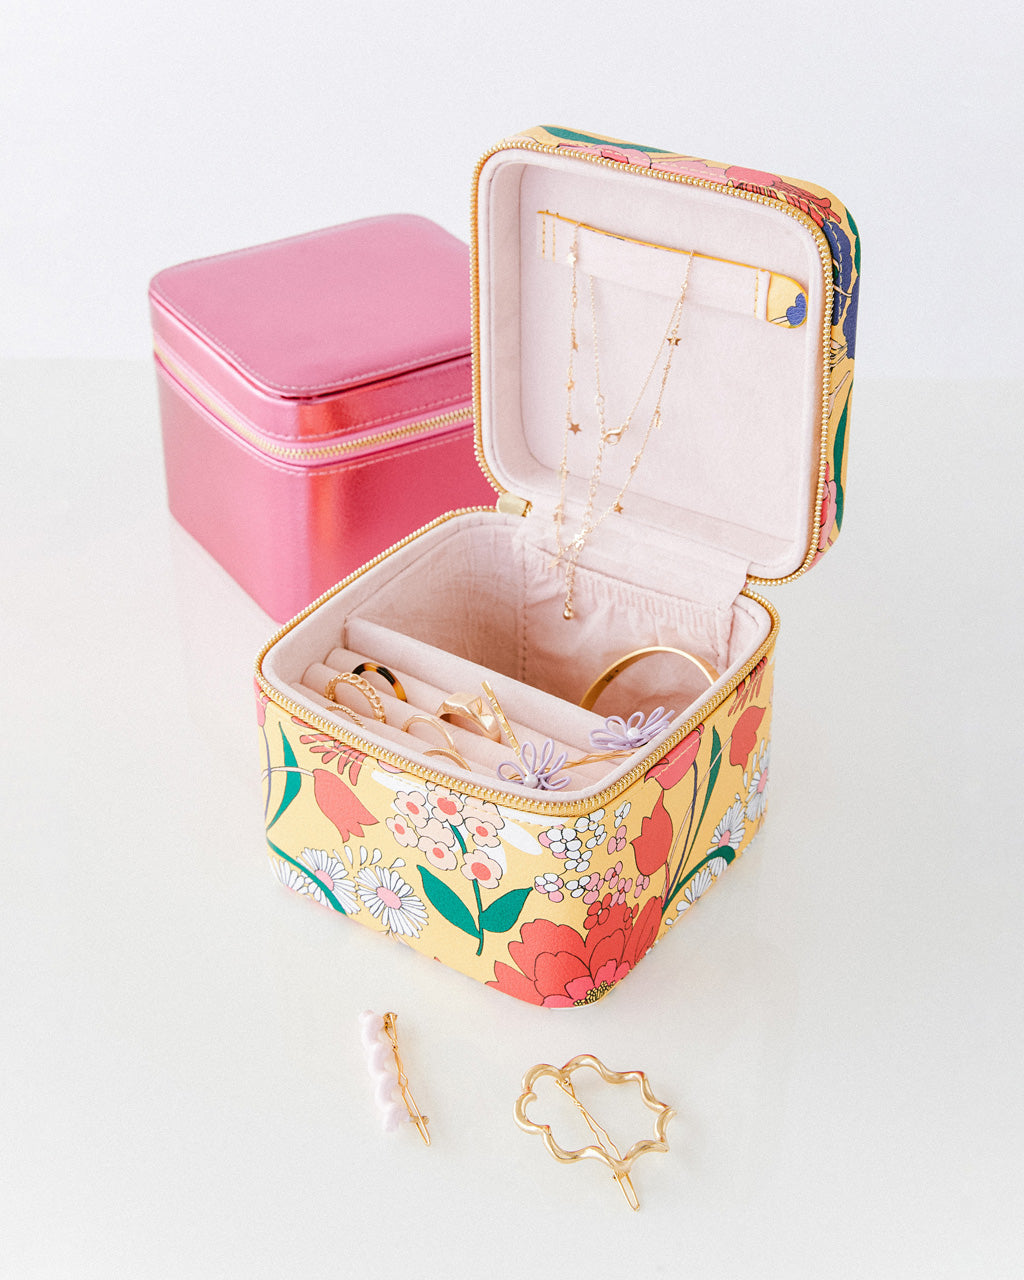 two zipper jewelry boxes shown with jewelry and hair accessories